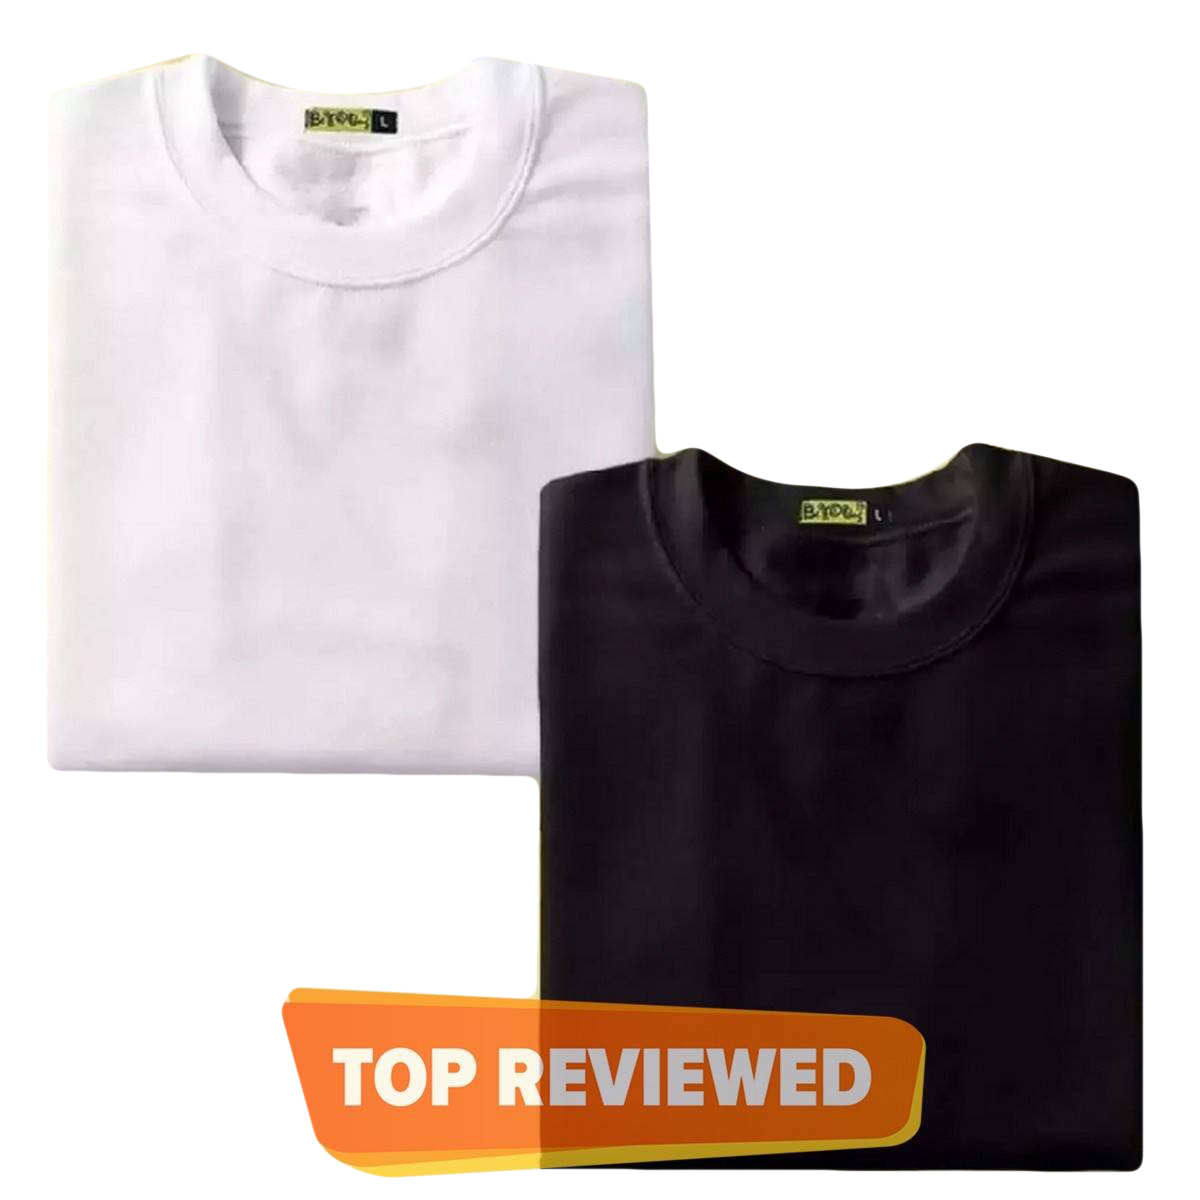 The Vintage Clothing Pack of 2 plain black and white half sleeves T shirt